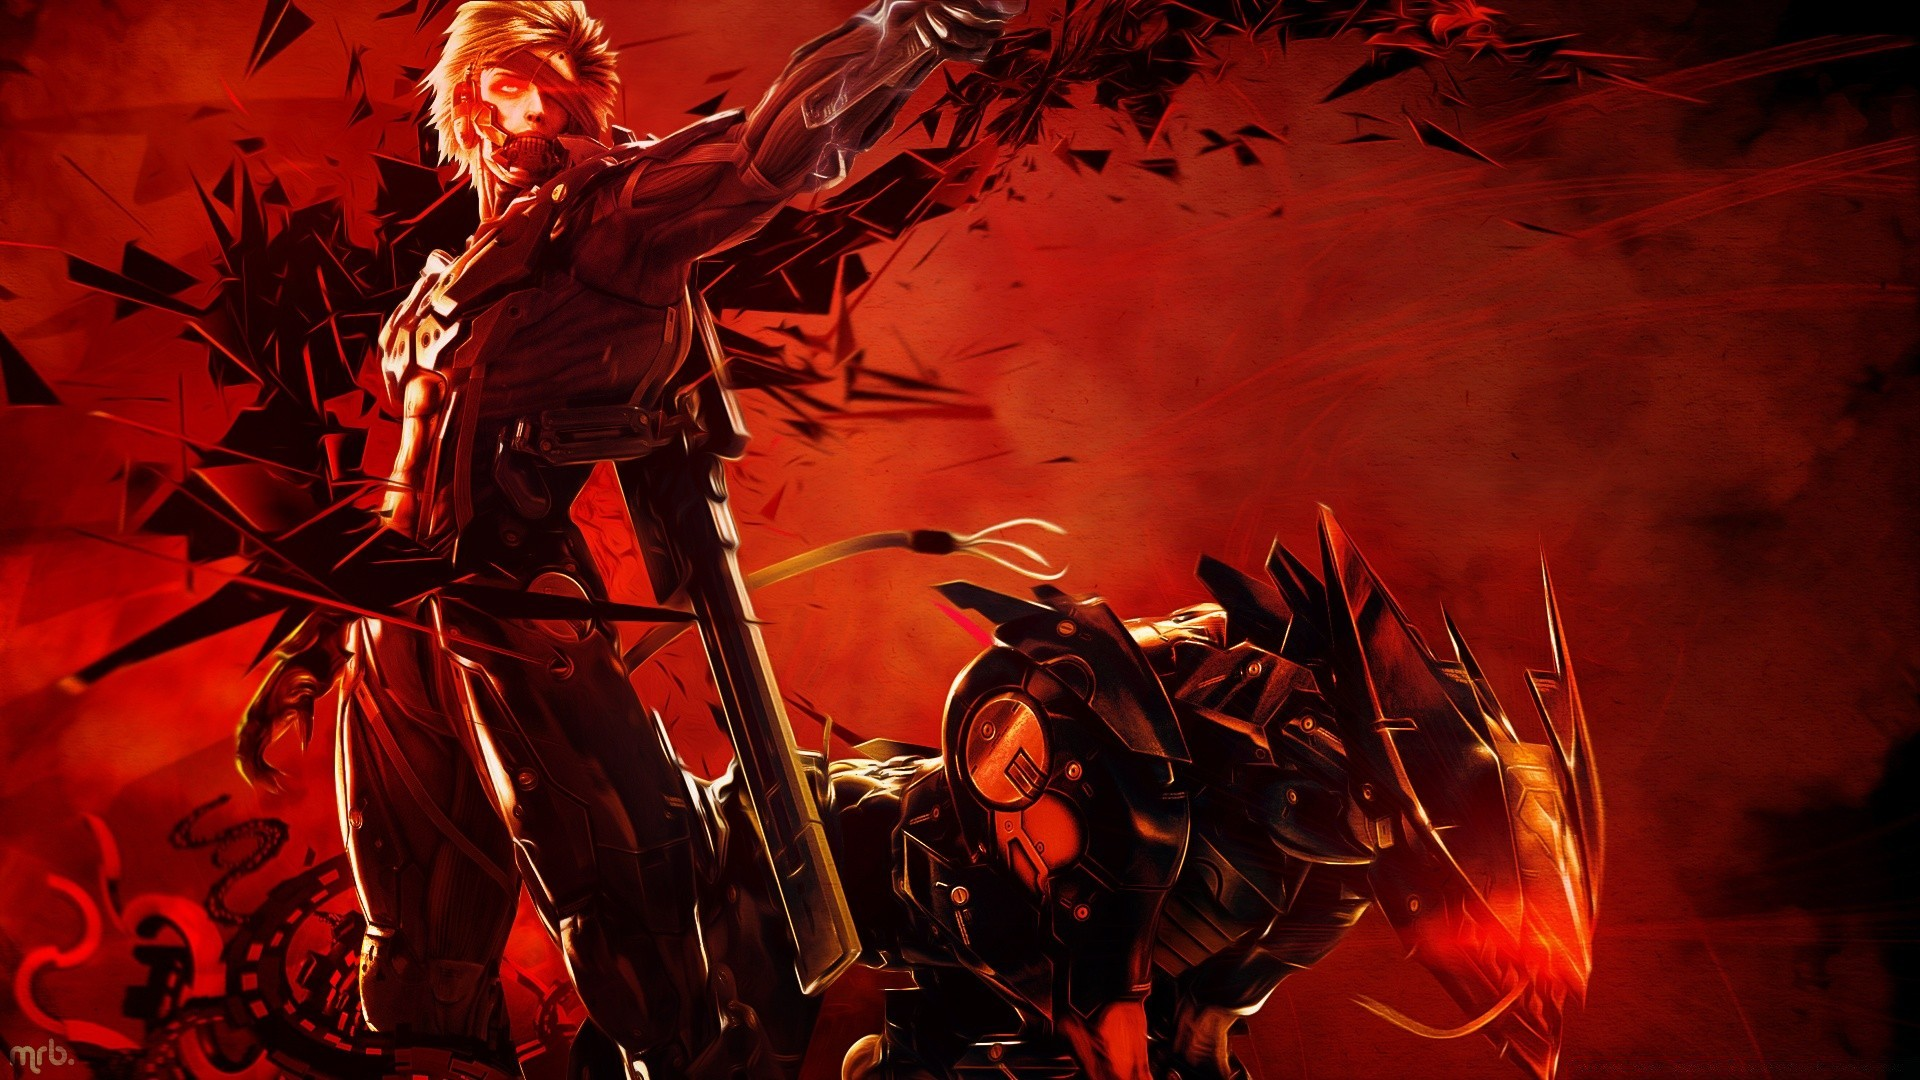 Metal gear rising revengeance wallpaper 2 android wallpapers for free voltagebd